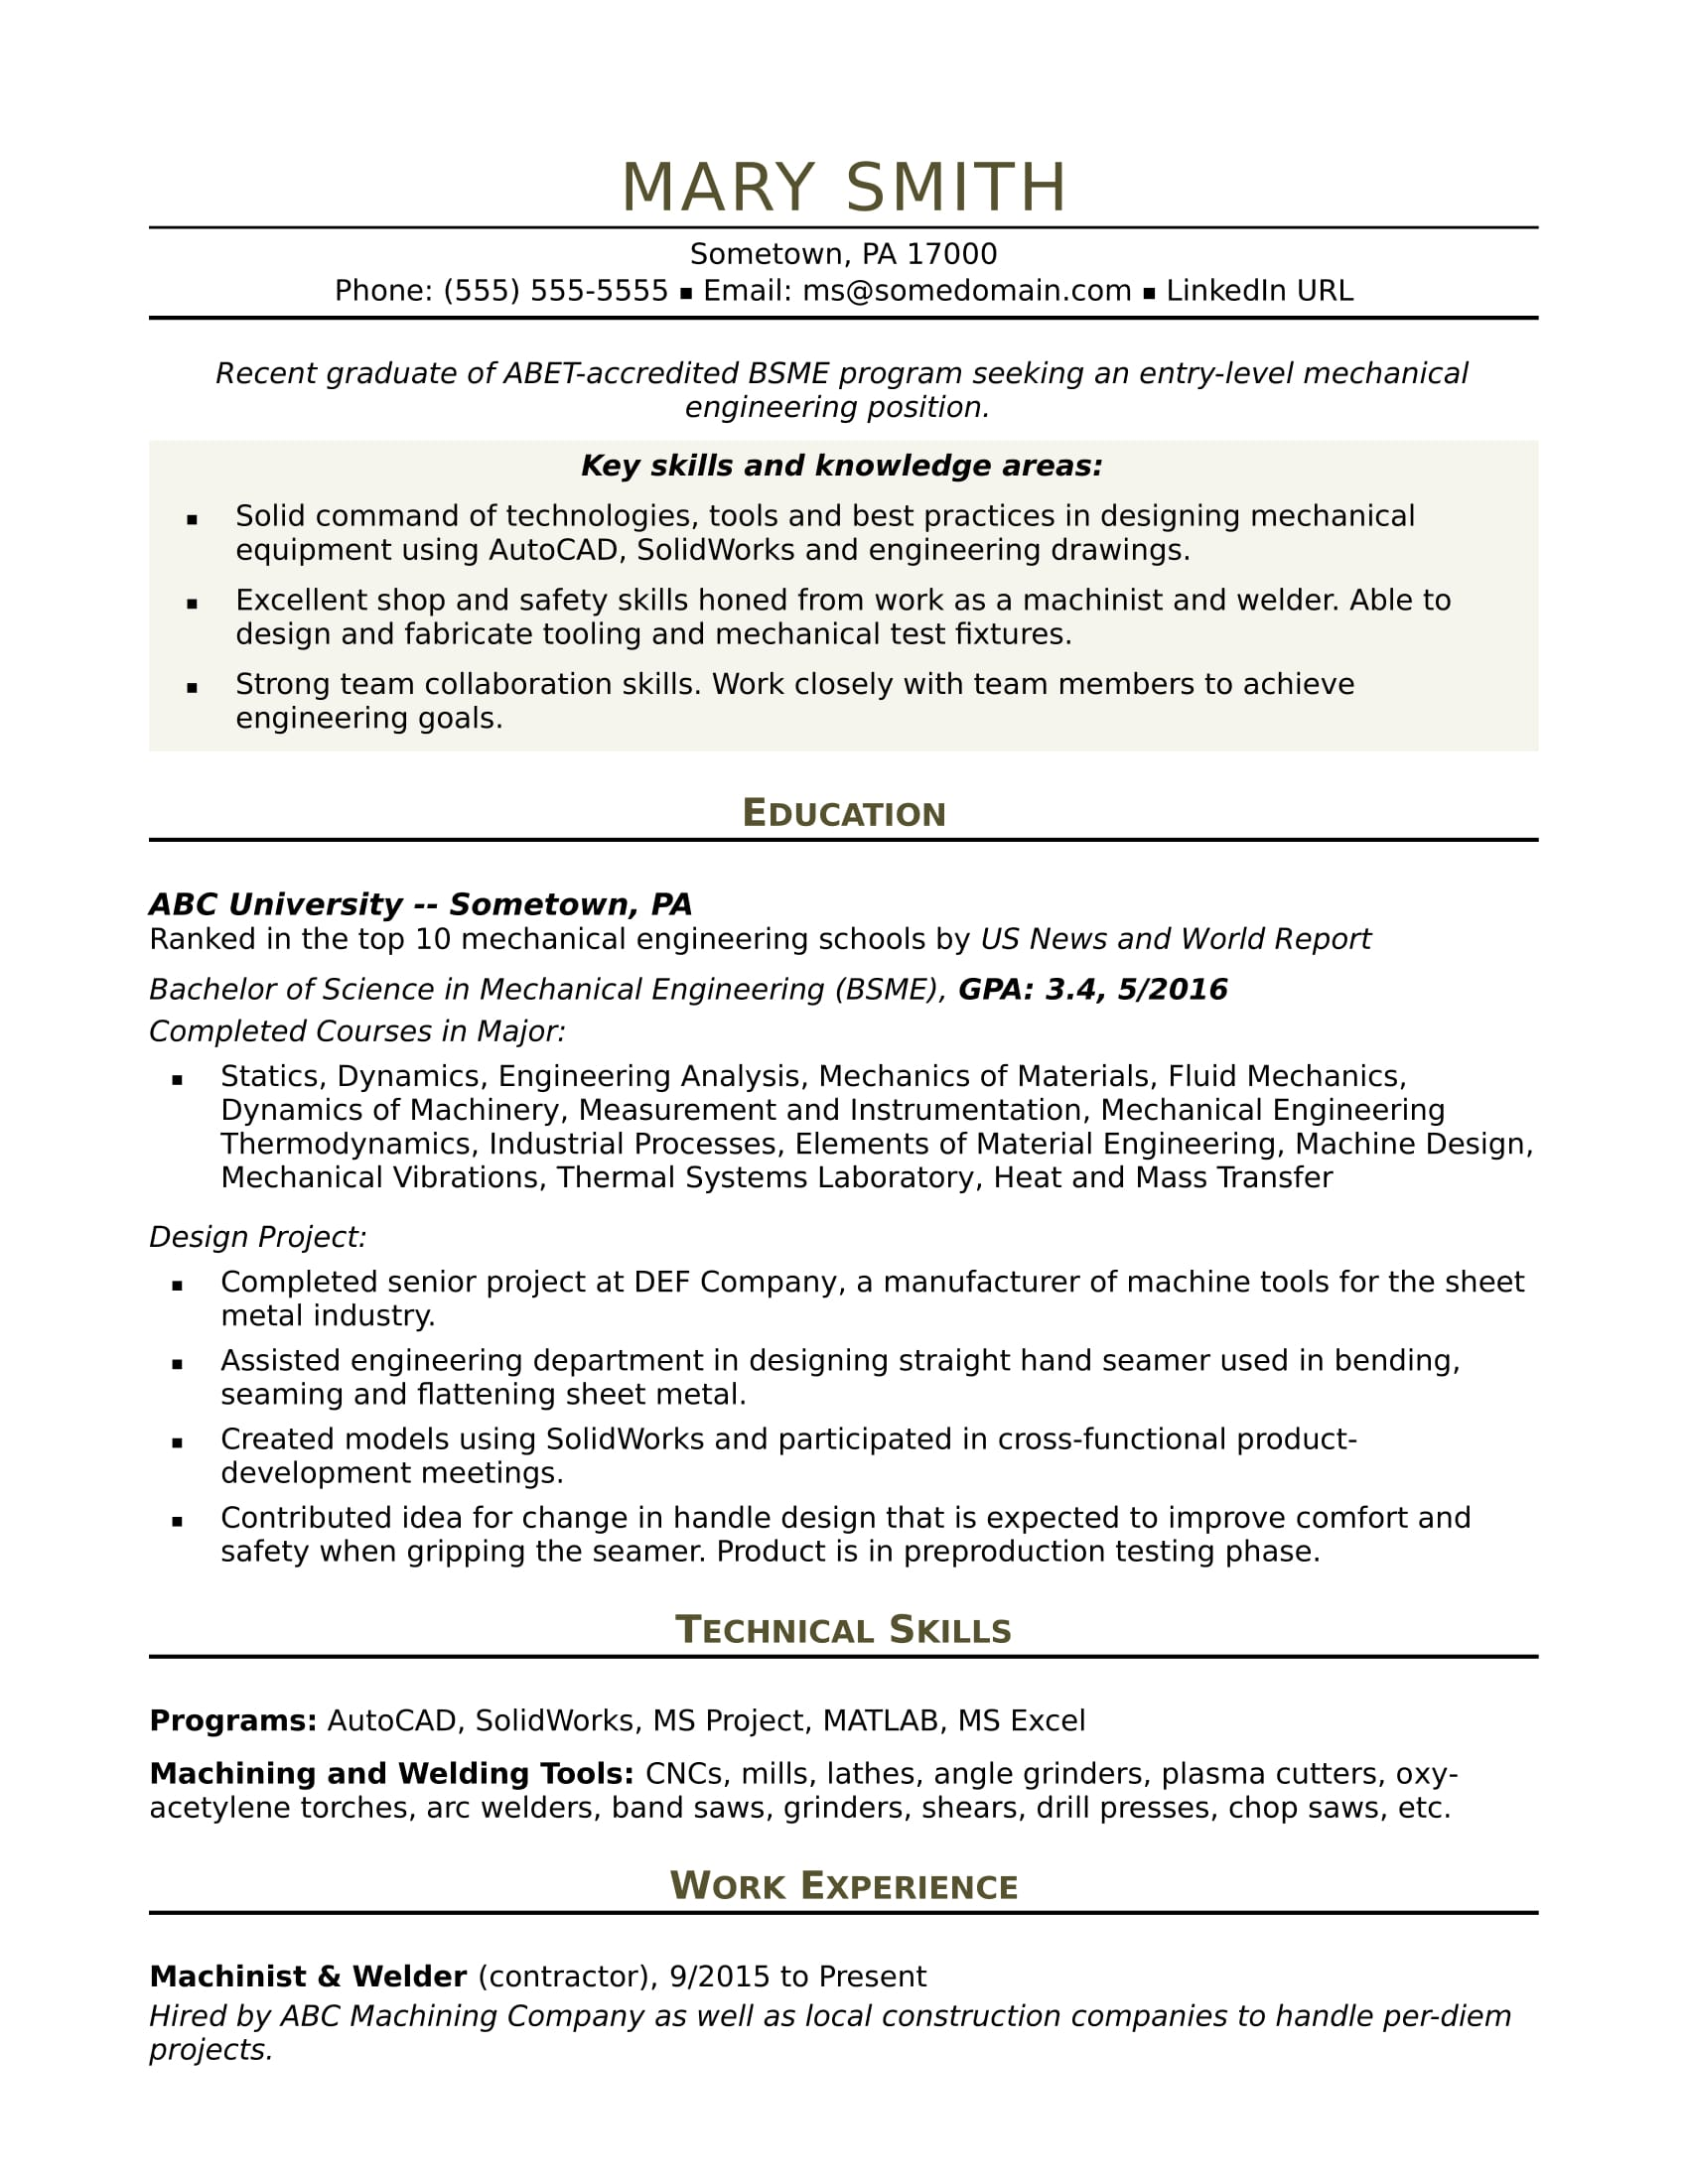 Sample resume for an entry level mechanical engineer monster sample resume for an entry level mechanical engineer yelopaper